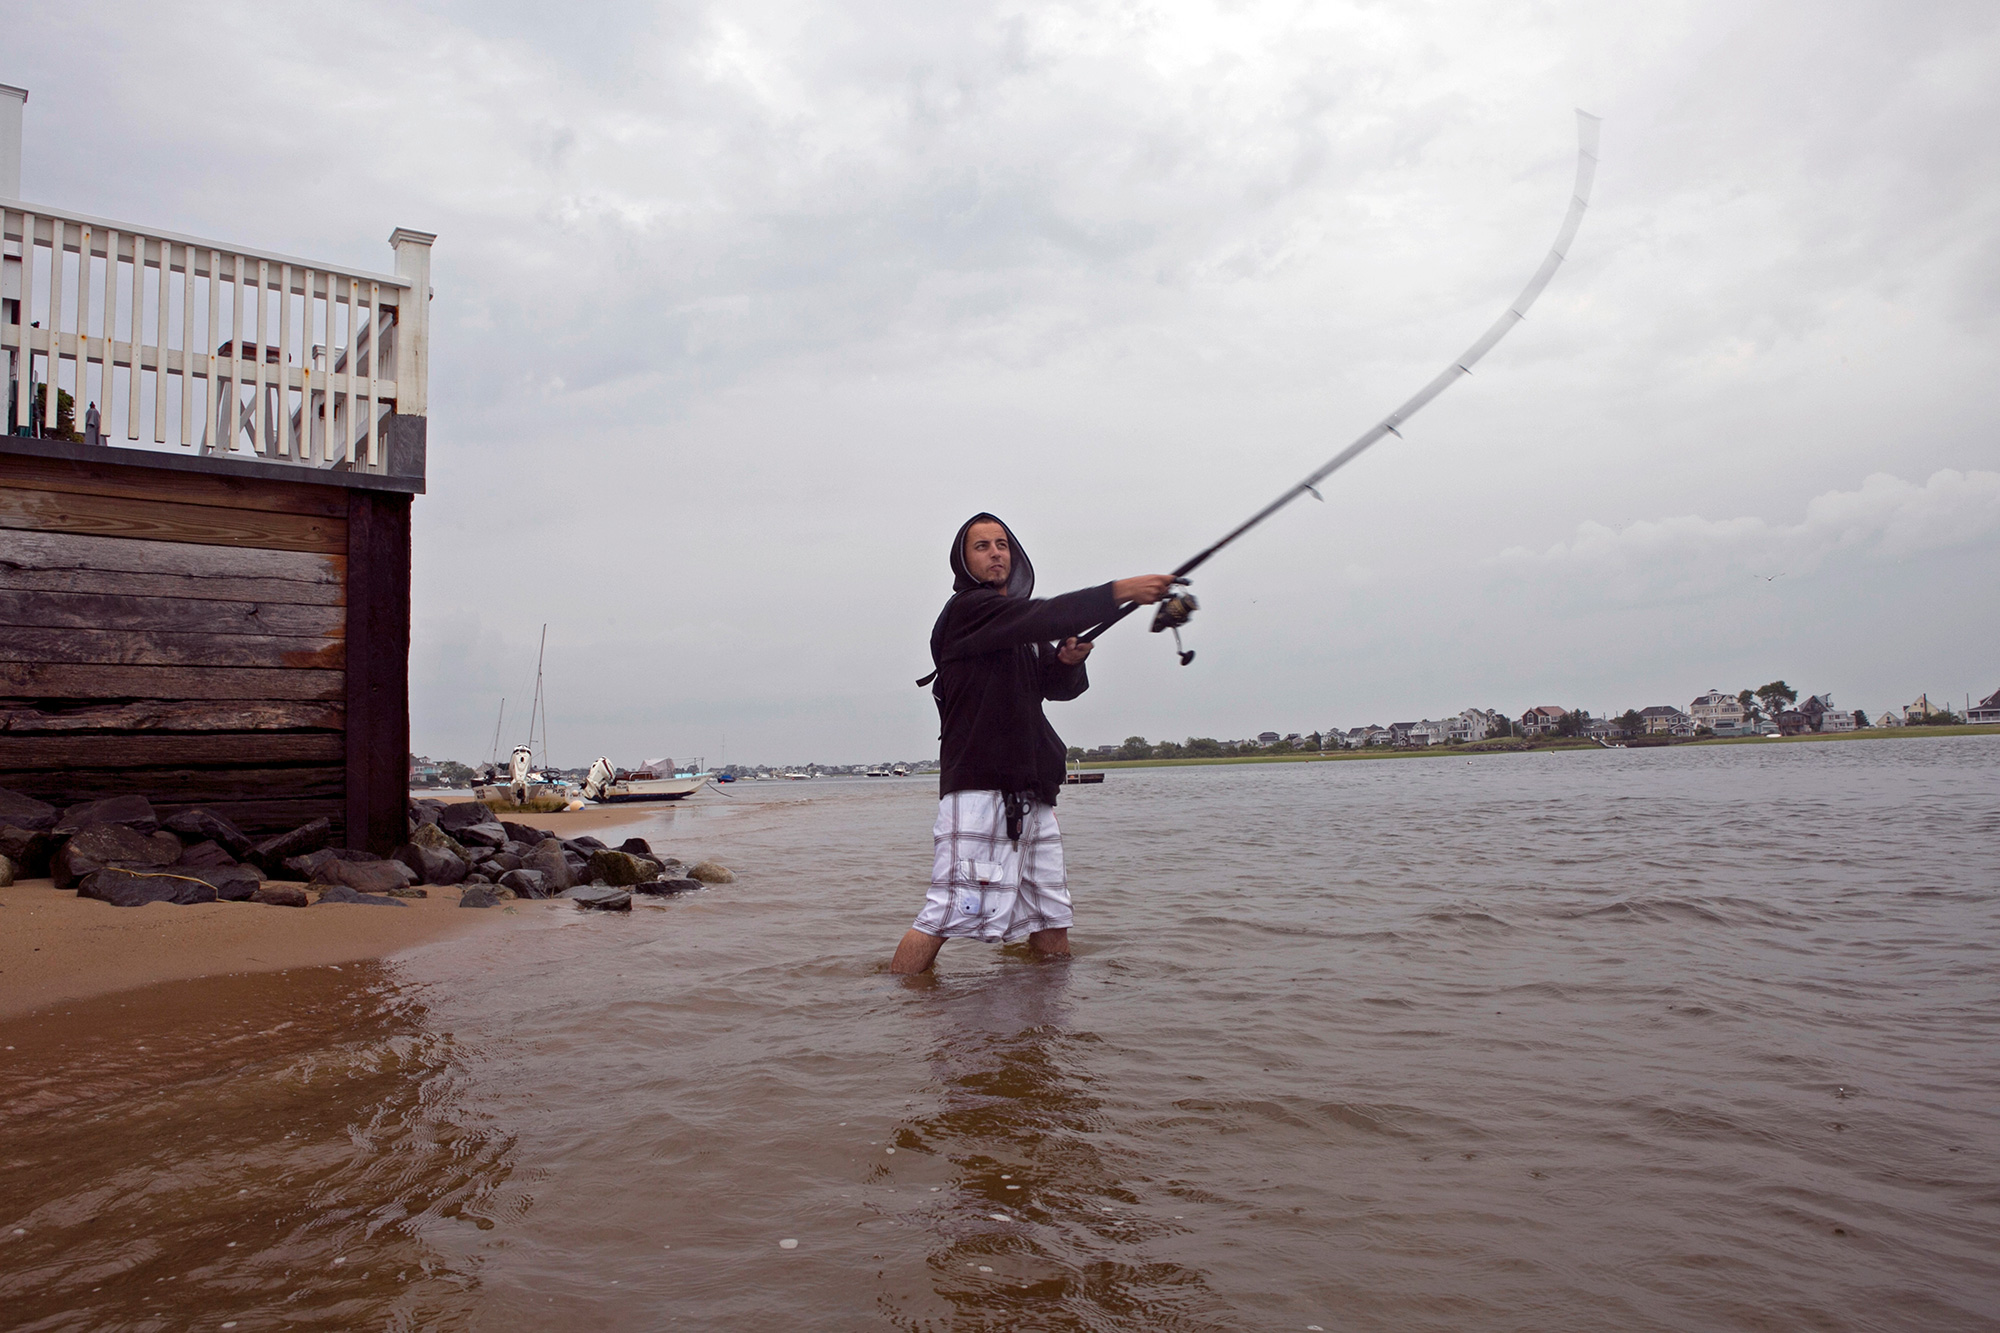 Marcos Rego fishes for striped bass on Plum Island early in the morning. During high tide, the water slaps against the building behind him. (Photo by Lauren Owens Lambert/GroundTruth)